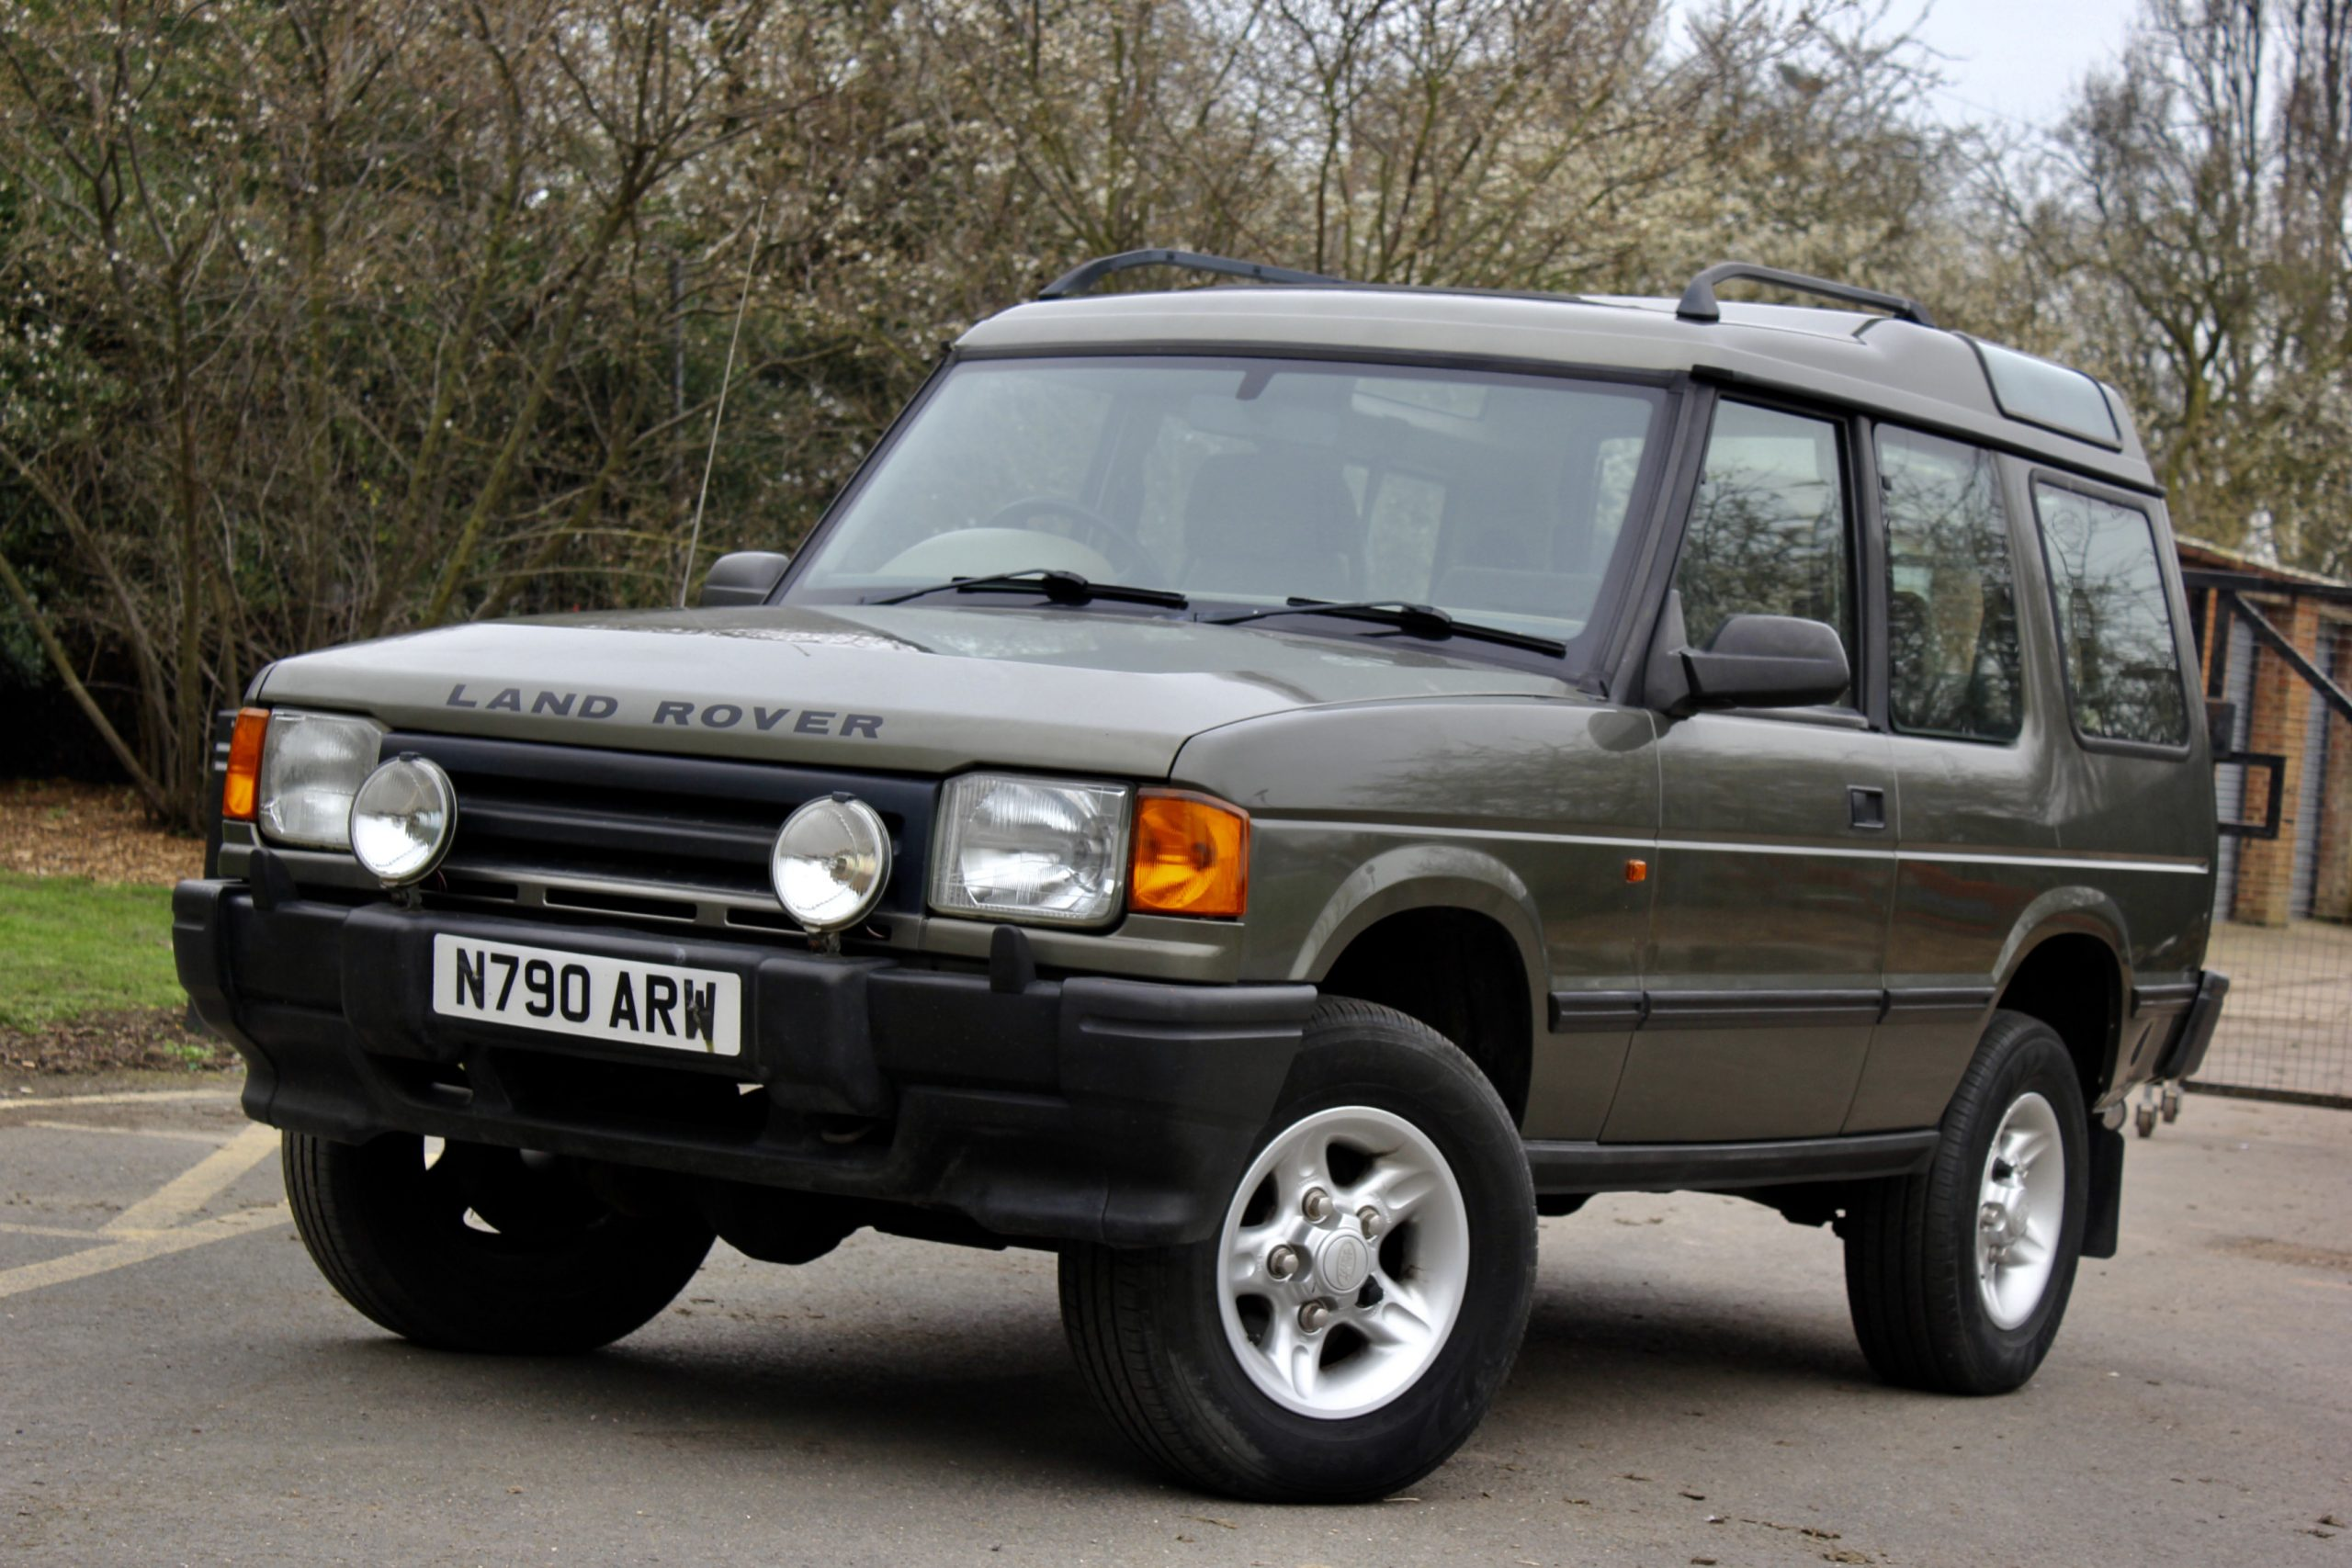 Invest in British beef with this Land Rover Discovery V8